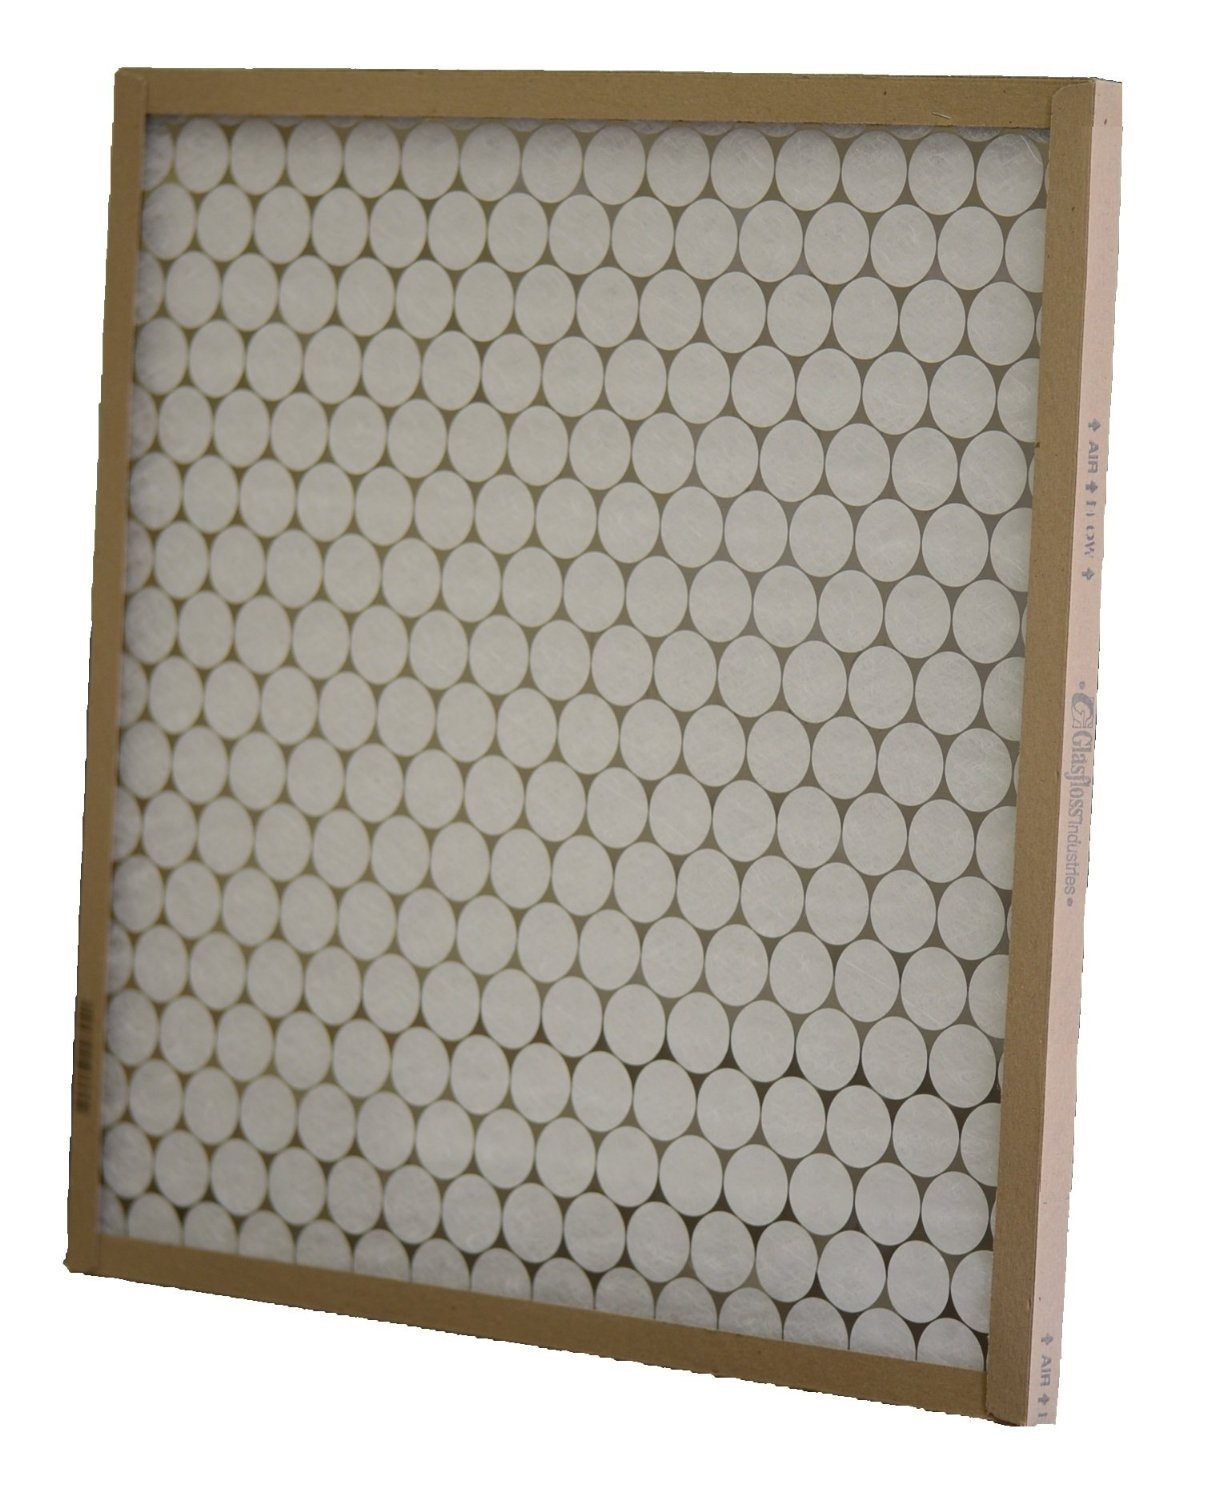 Glasfloss Industries PTA16181 PTA Series Heavy Duty Disposable Panel Air Filter, 12-Case by Glasfloss Industries B0062AEC7Y